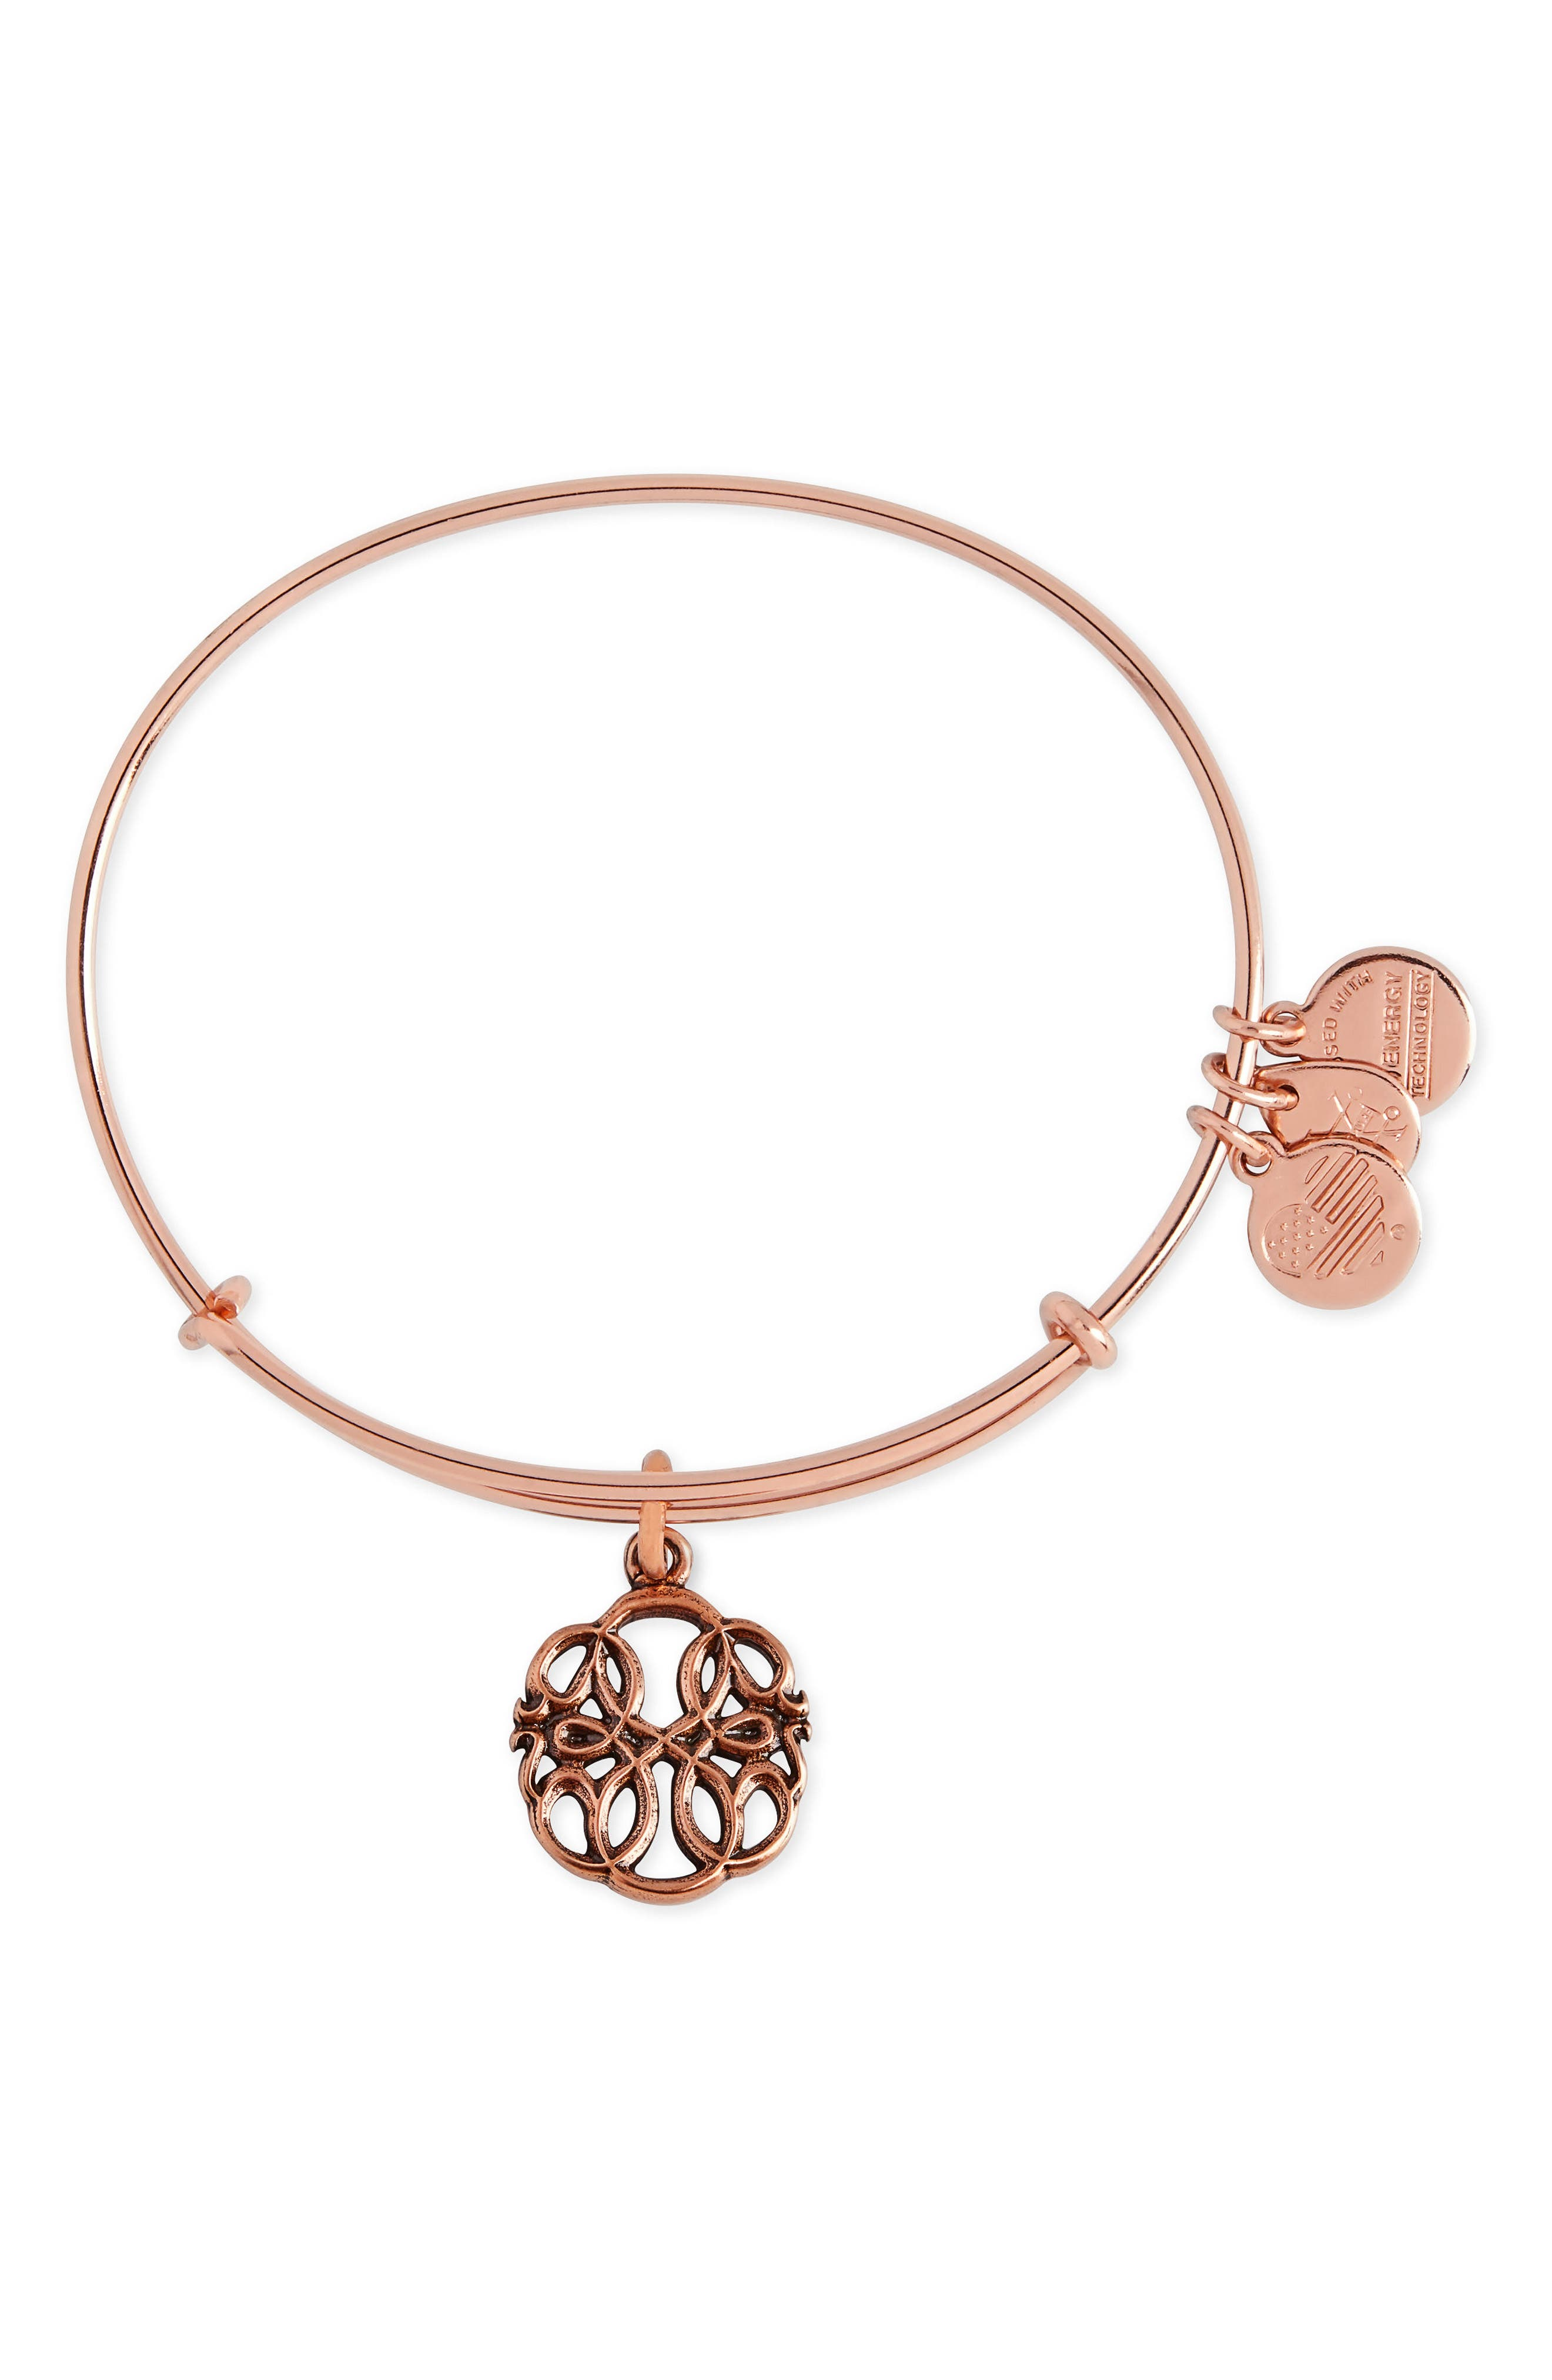 Main Image - Alex and Ani Path of Life Adjustable Wire Bangle (Nordstrom Exclusive)